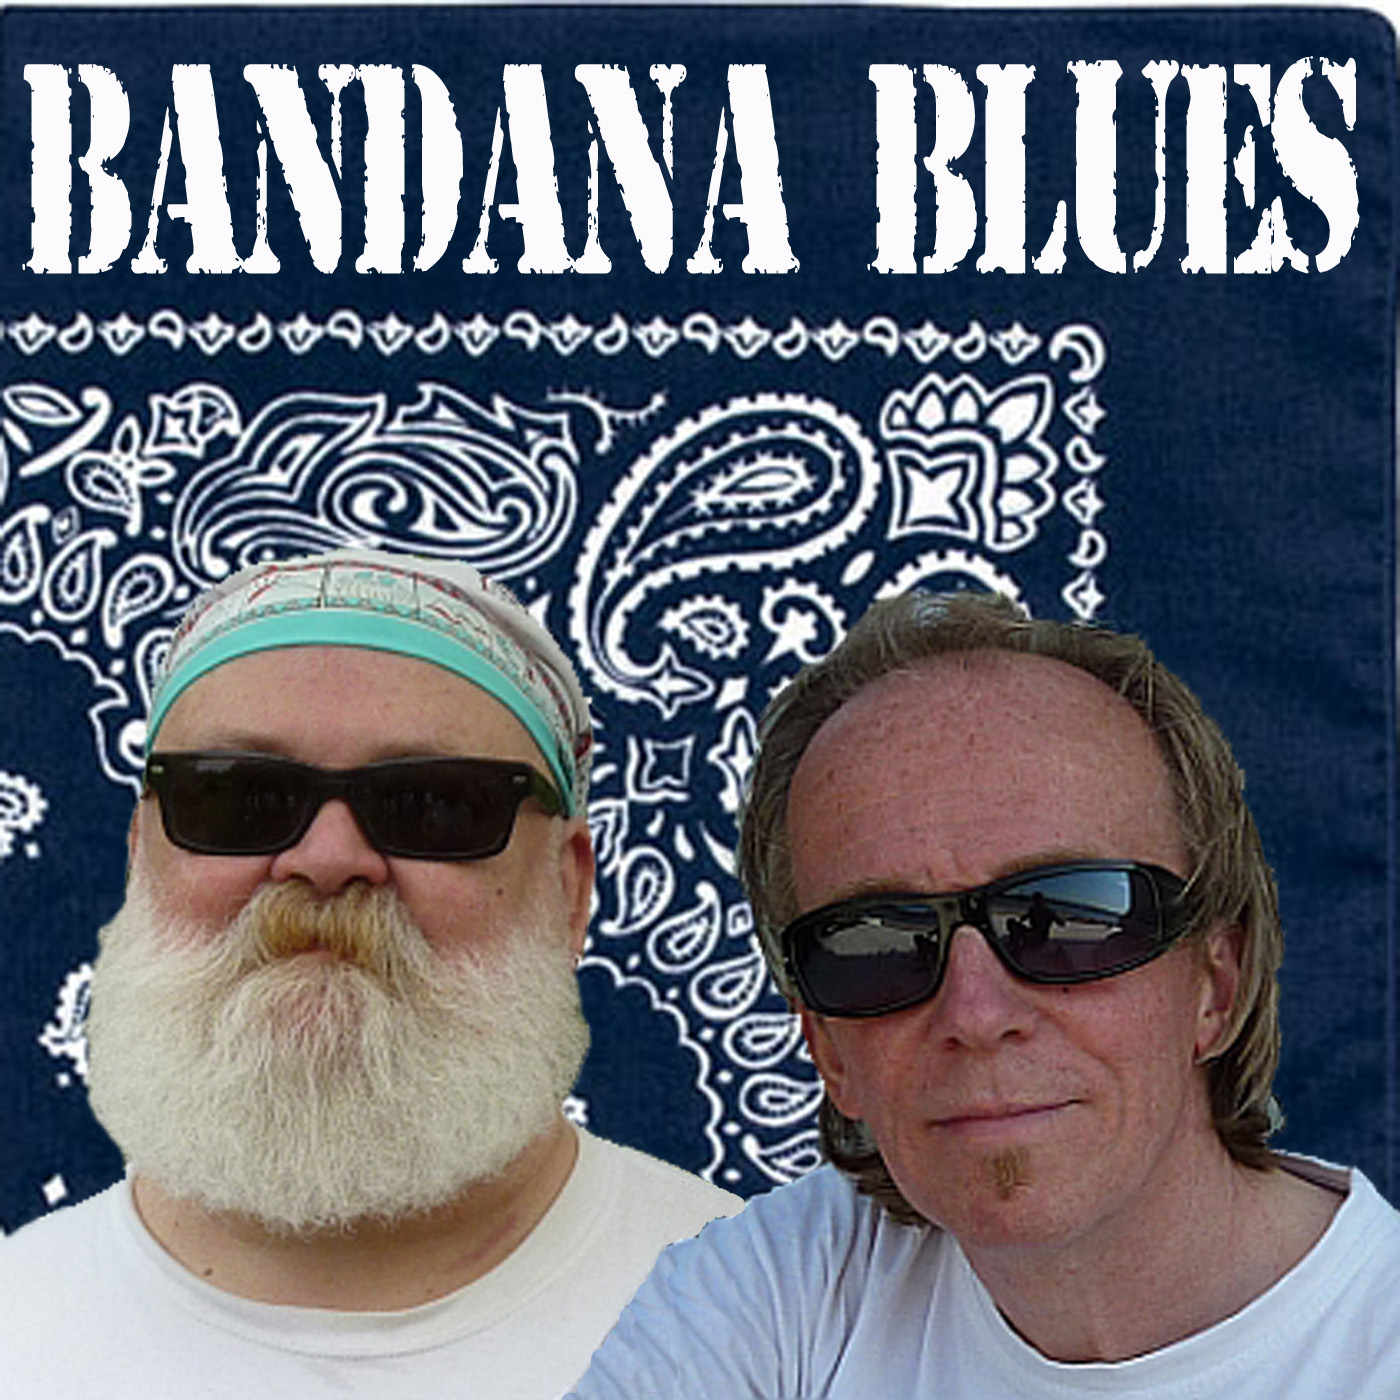 Bandana Blues, founded by Beardo, hosted by Spinner show art